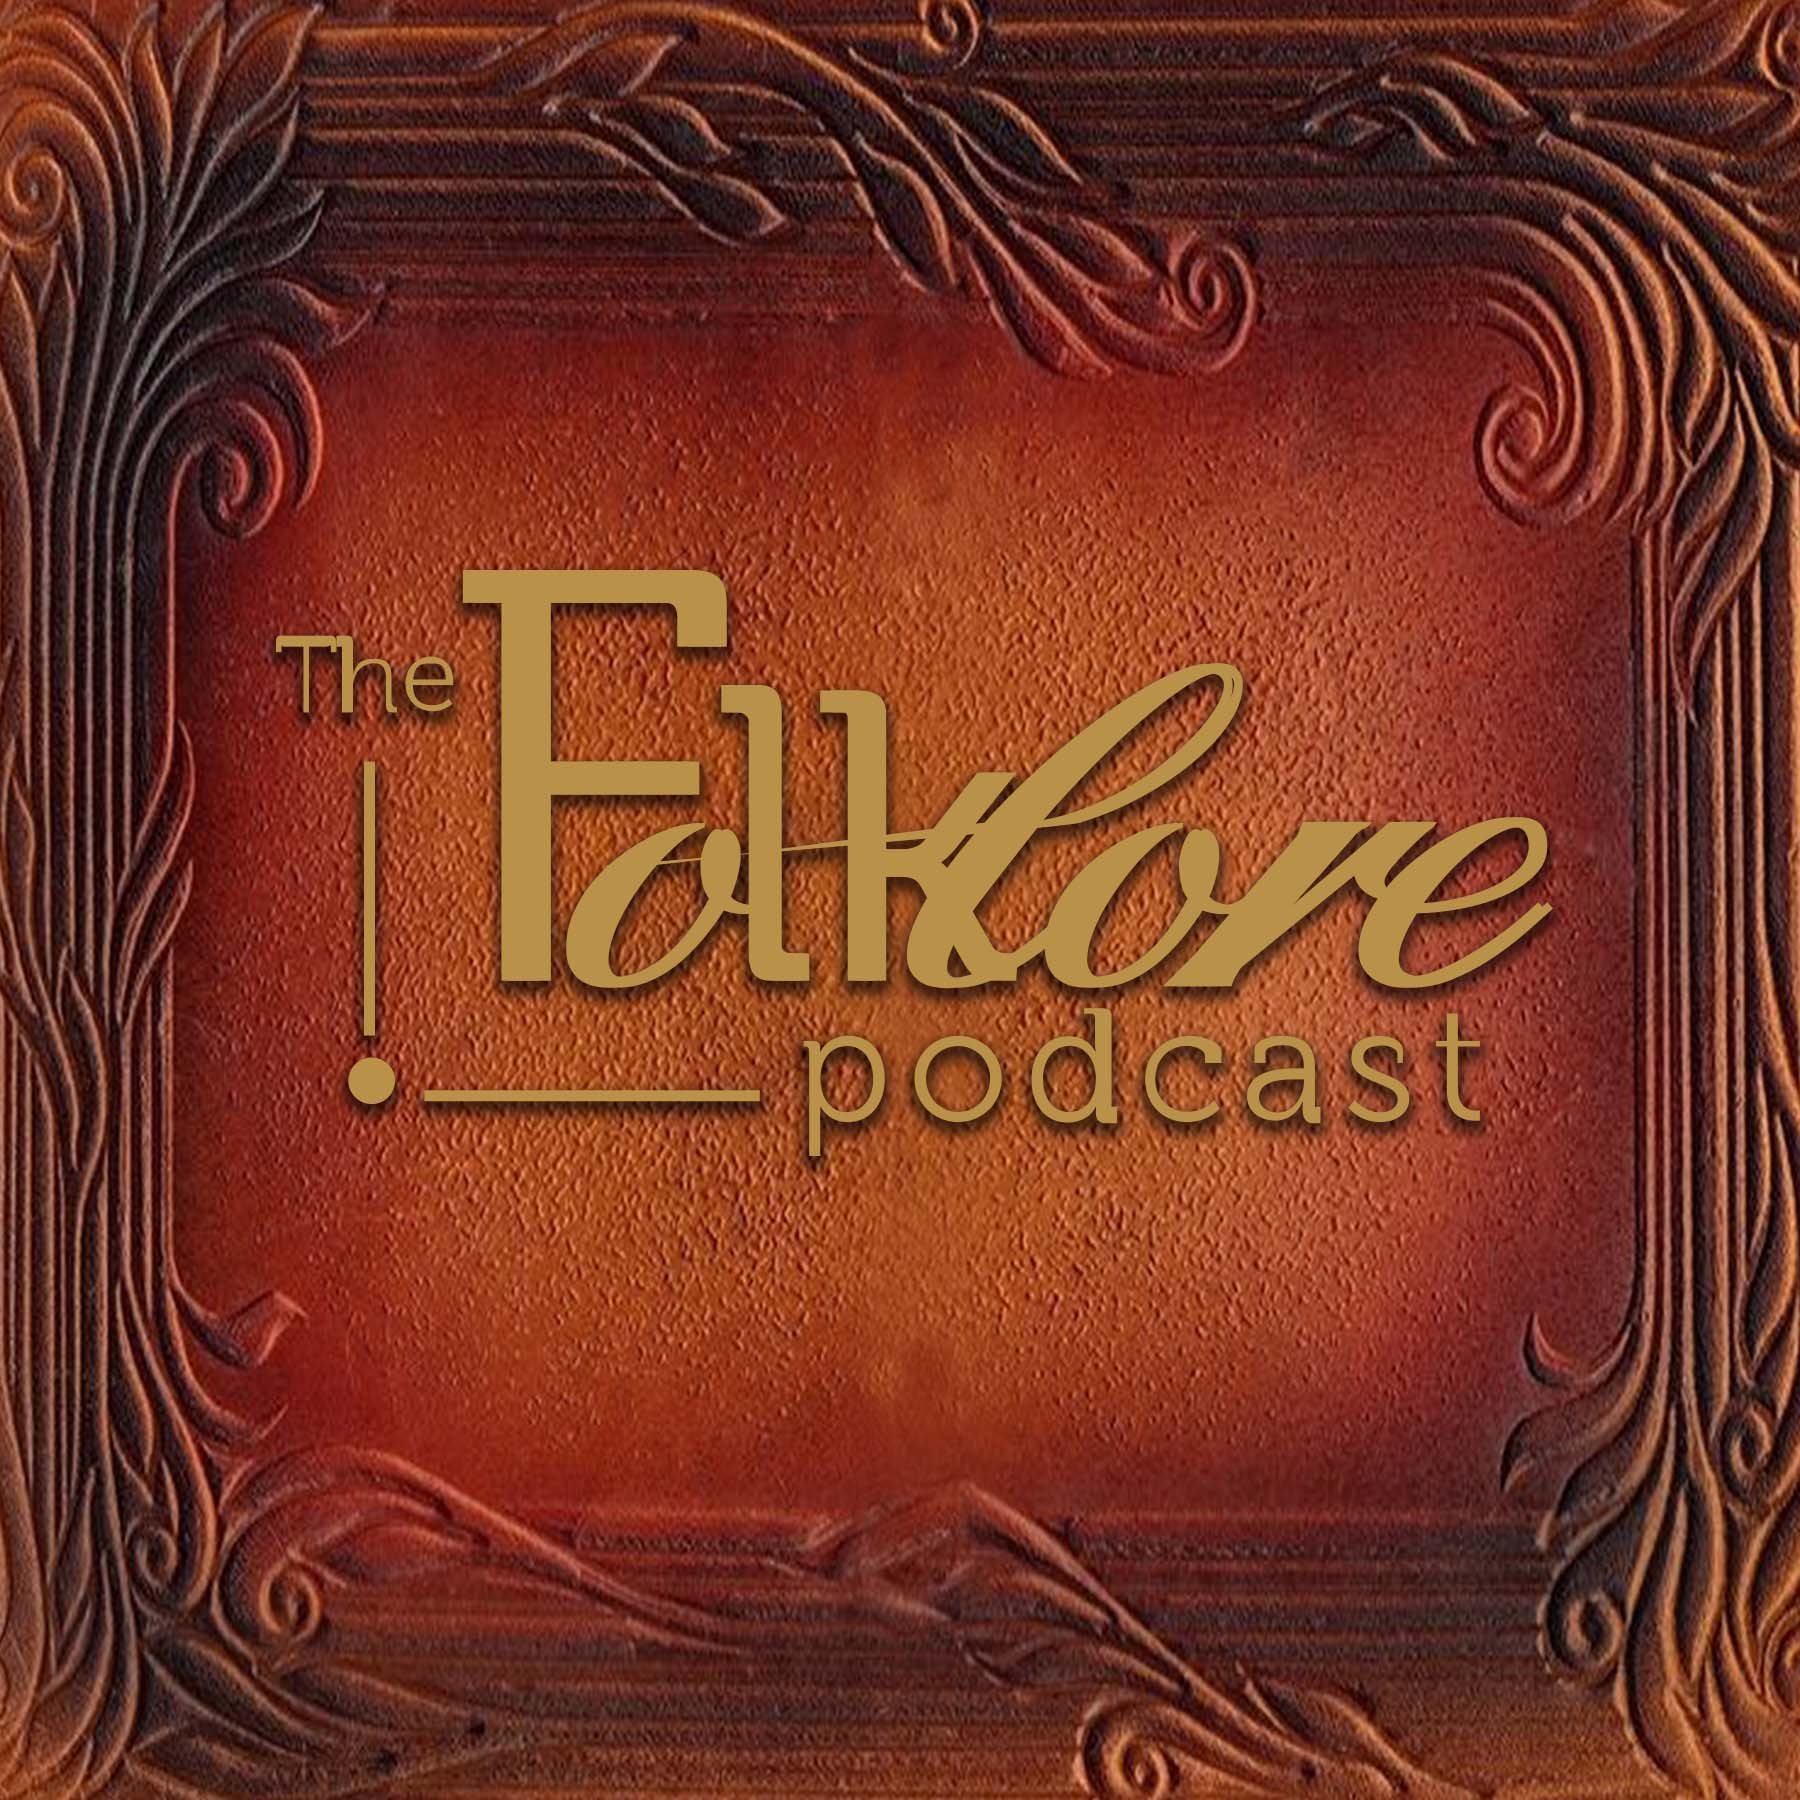 the folklore podcast on